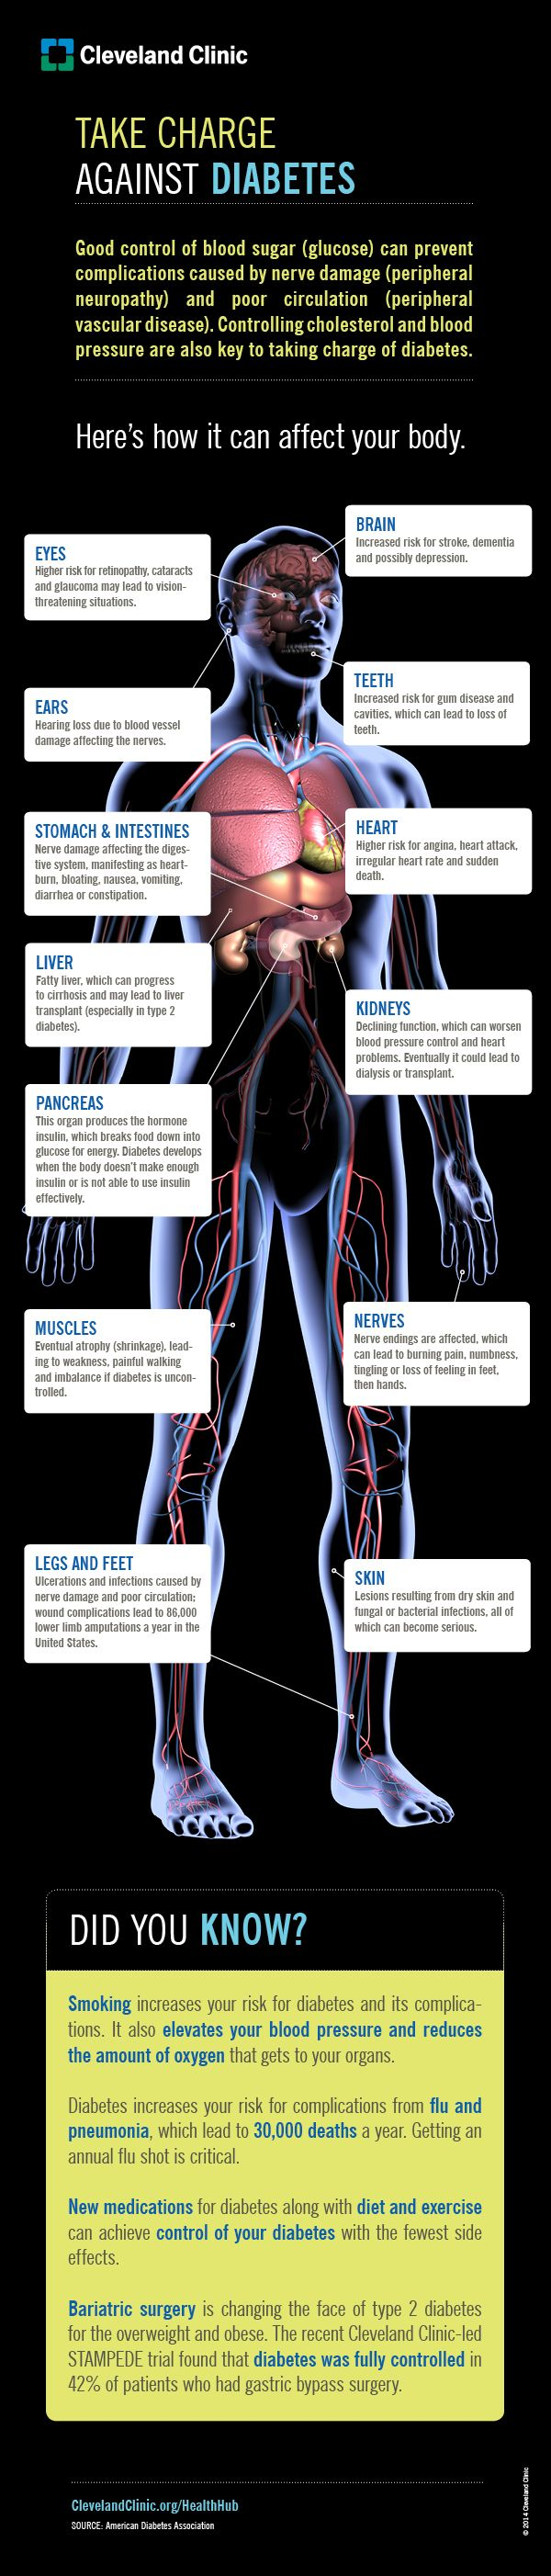 ☤ MD ☞☆☆☆ This infographic of the human body provides an overview of what can happen if diabetes is left unchecked. HealthHub from Cleveland Clinic.